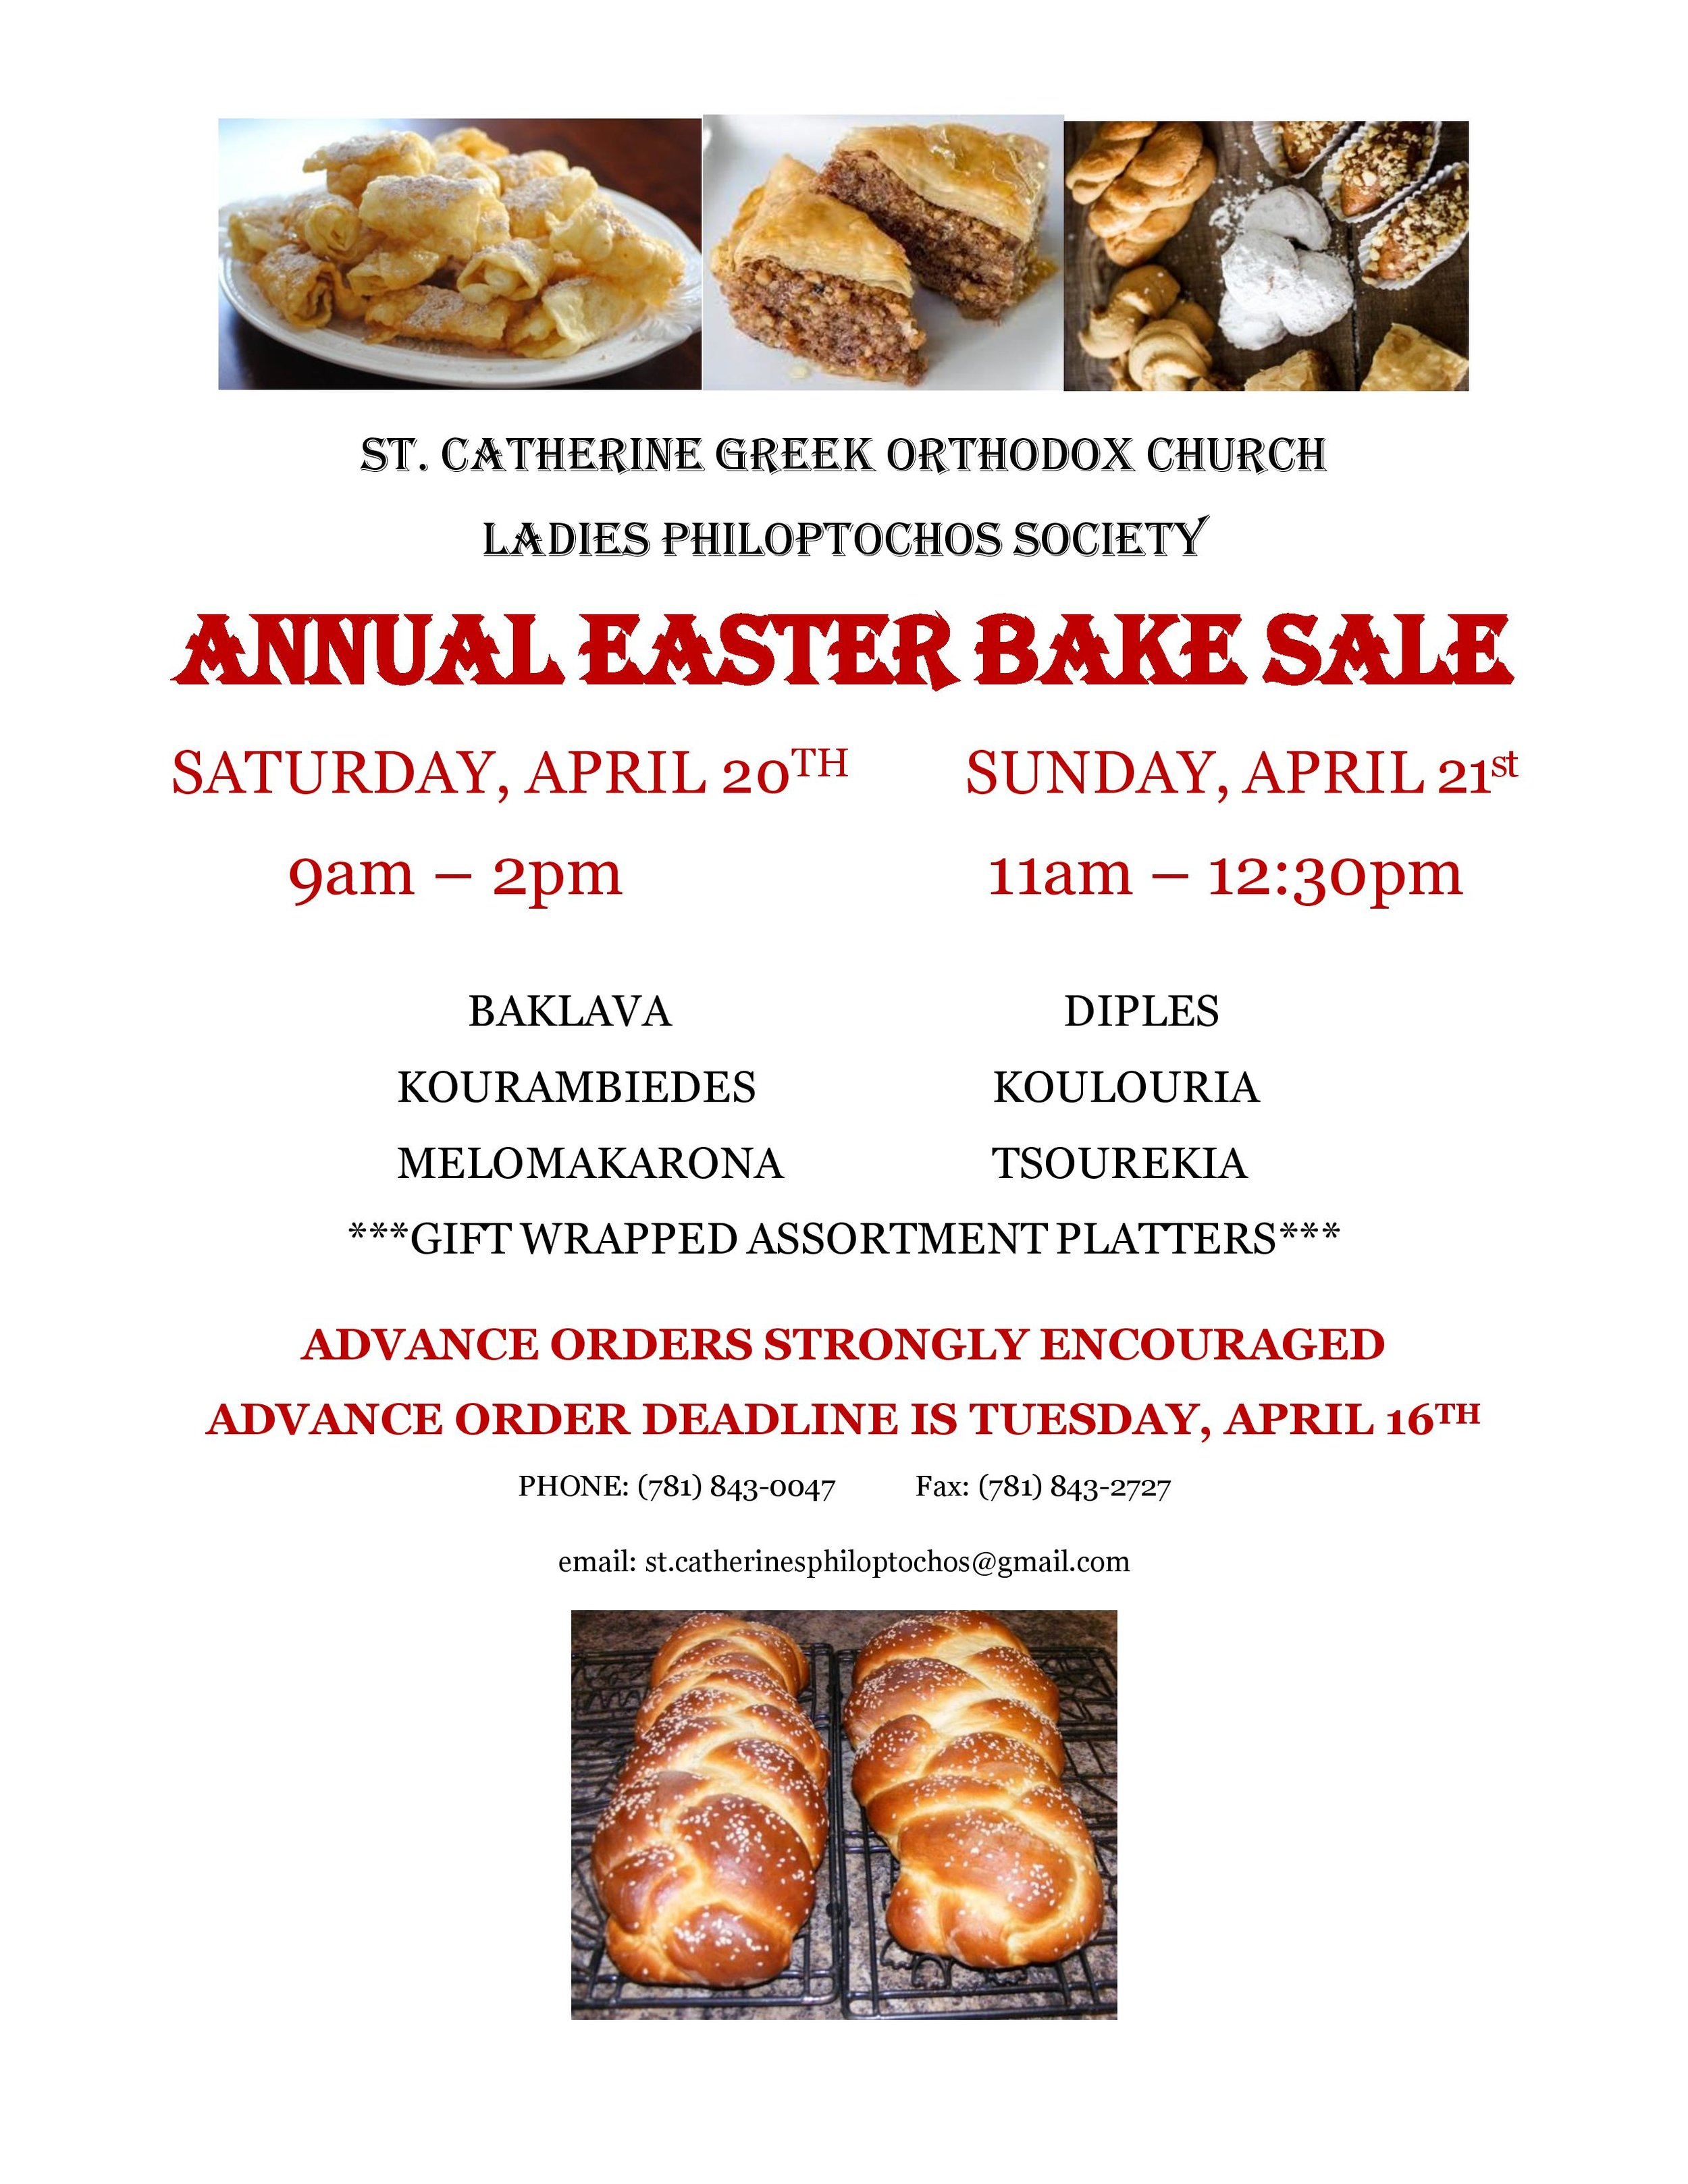 | | | | | PLACE YOUR ORDERS NOW FOR OUR EASTER BAKE SALE | | | | |